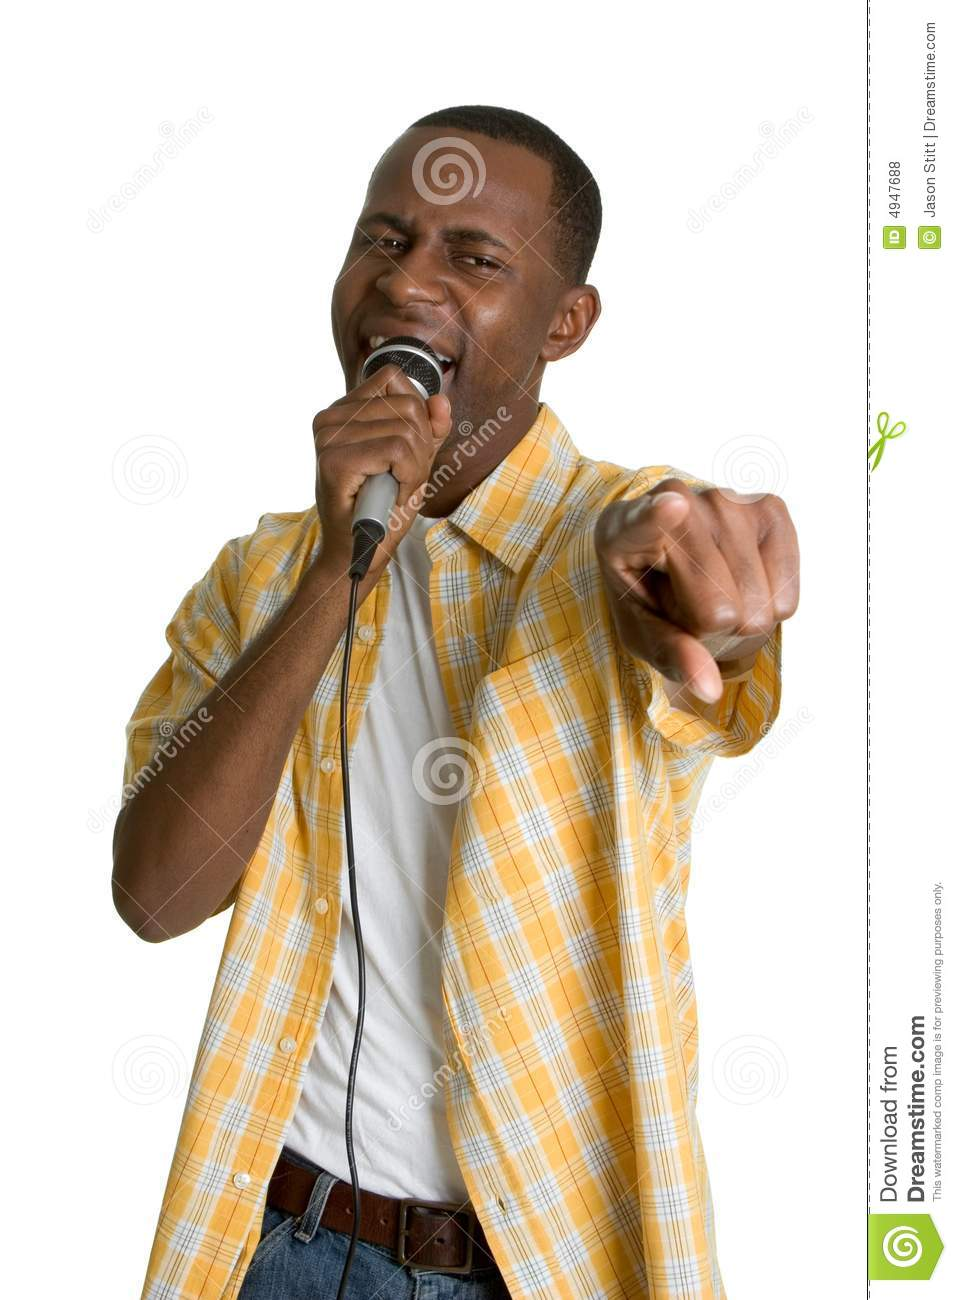 Black Karaoke Man Royalty Free Stock Photos Image 4947688